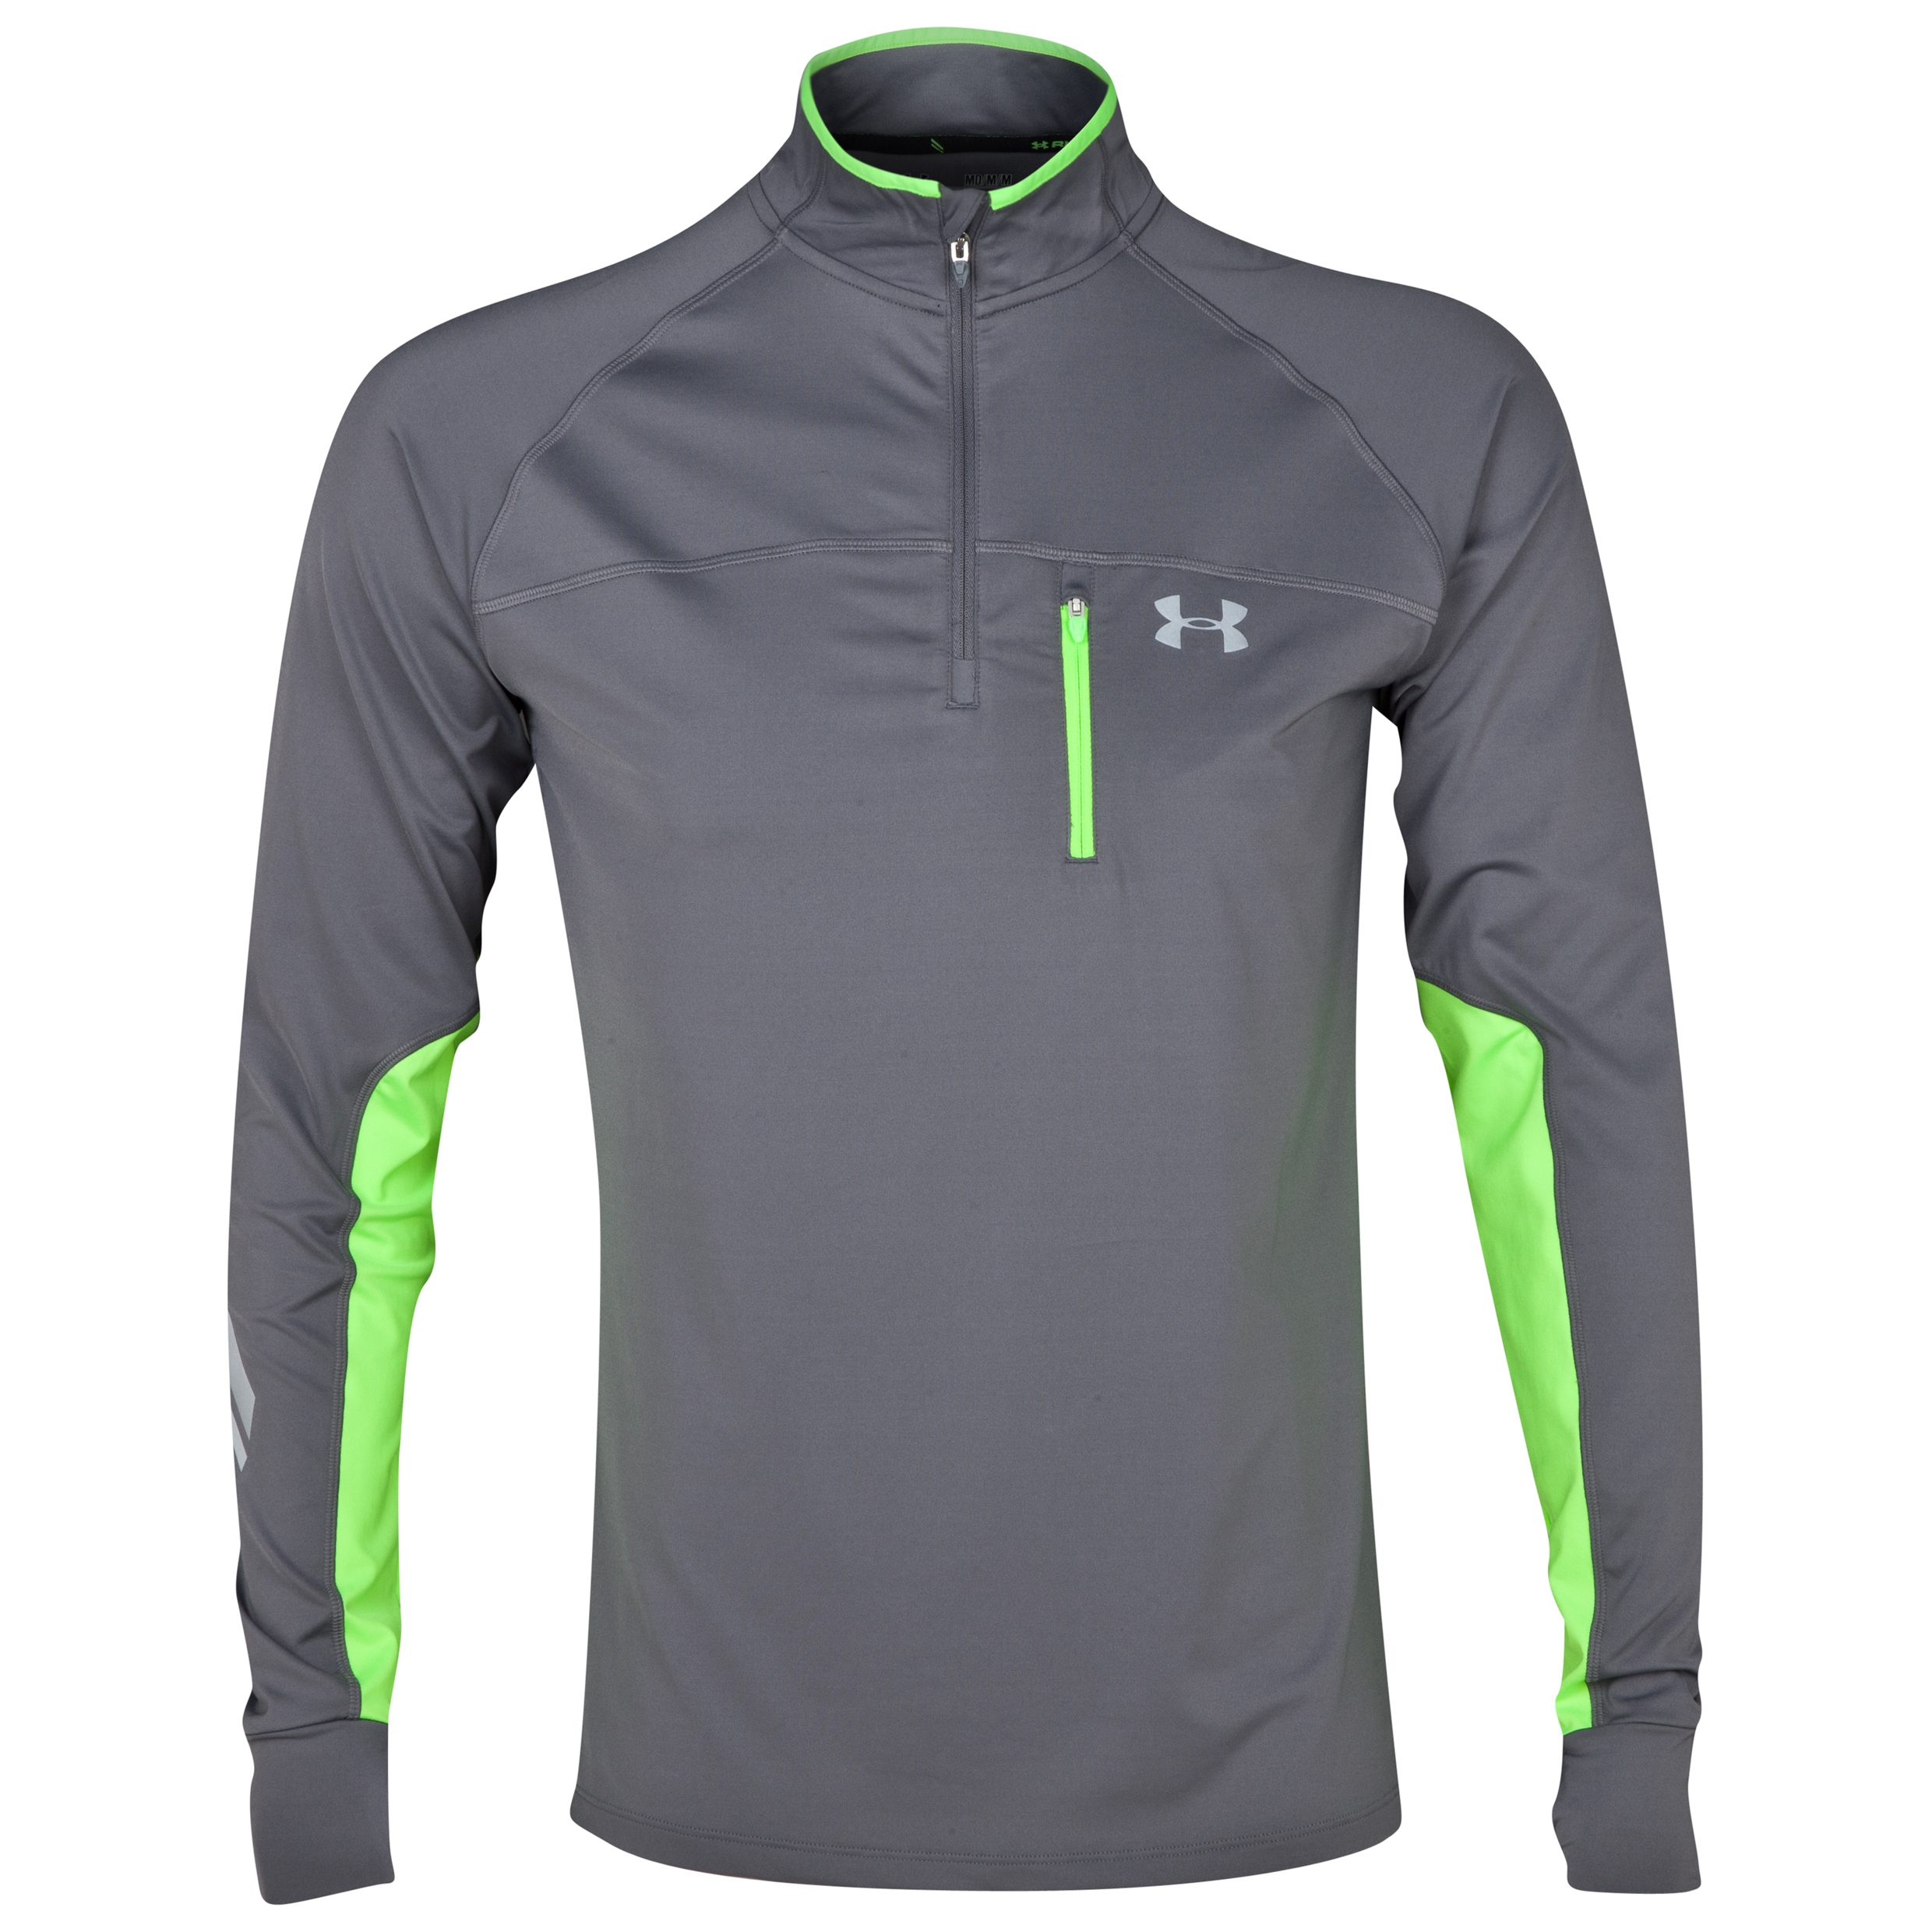 Running Under Armour Imminent Run 1/4 Zip - Graphite/Hyper Green Dk Grey